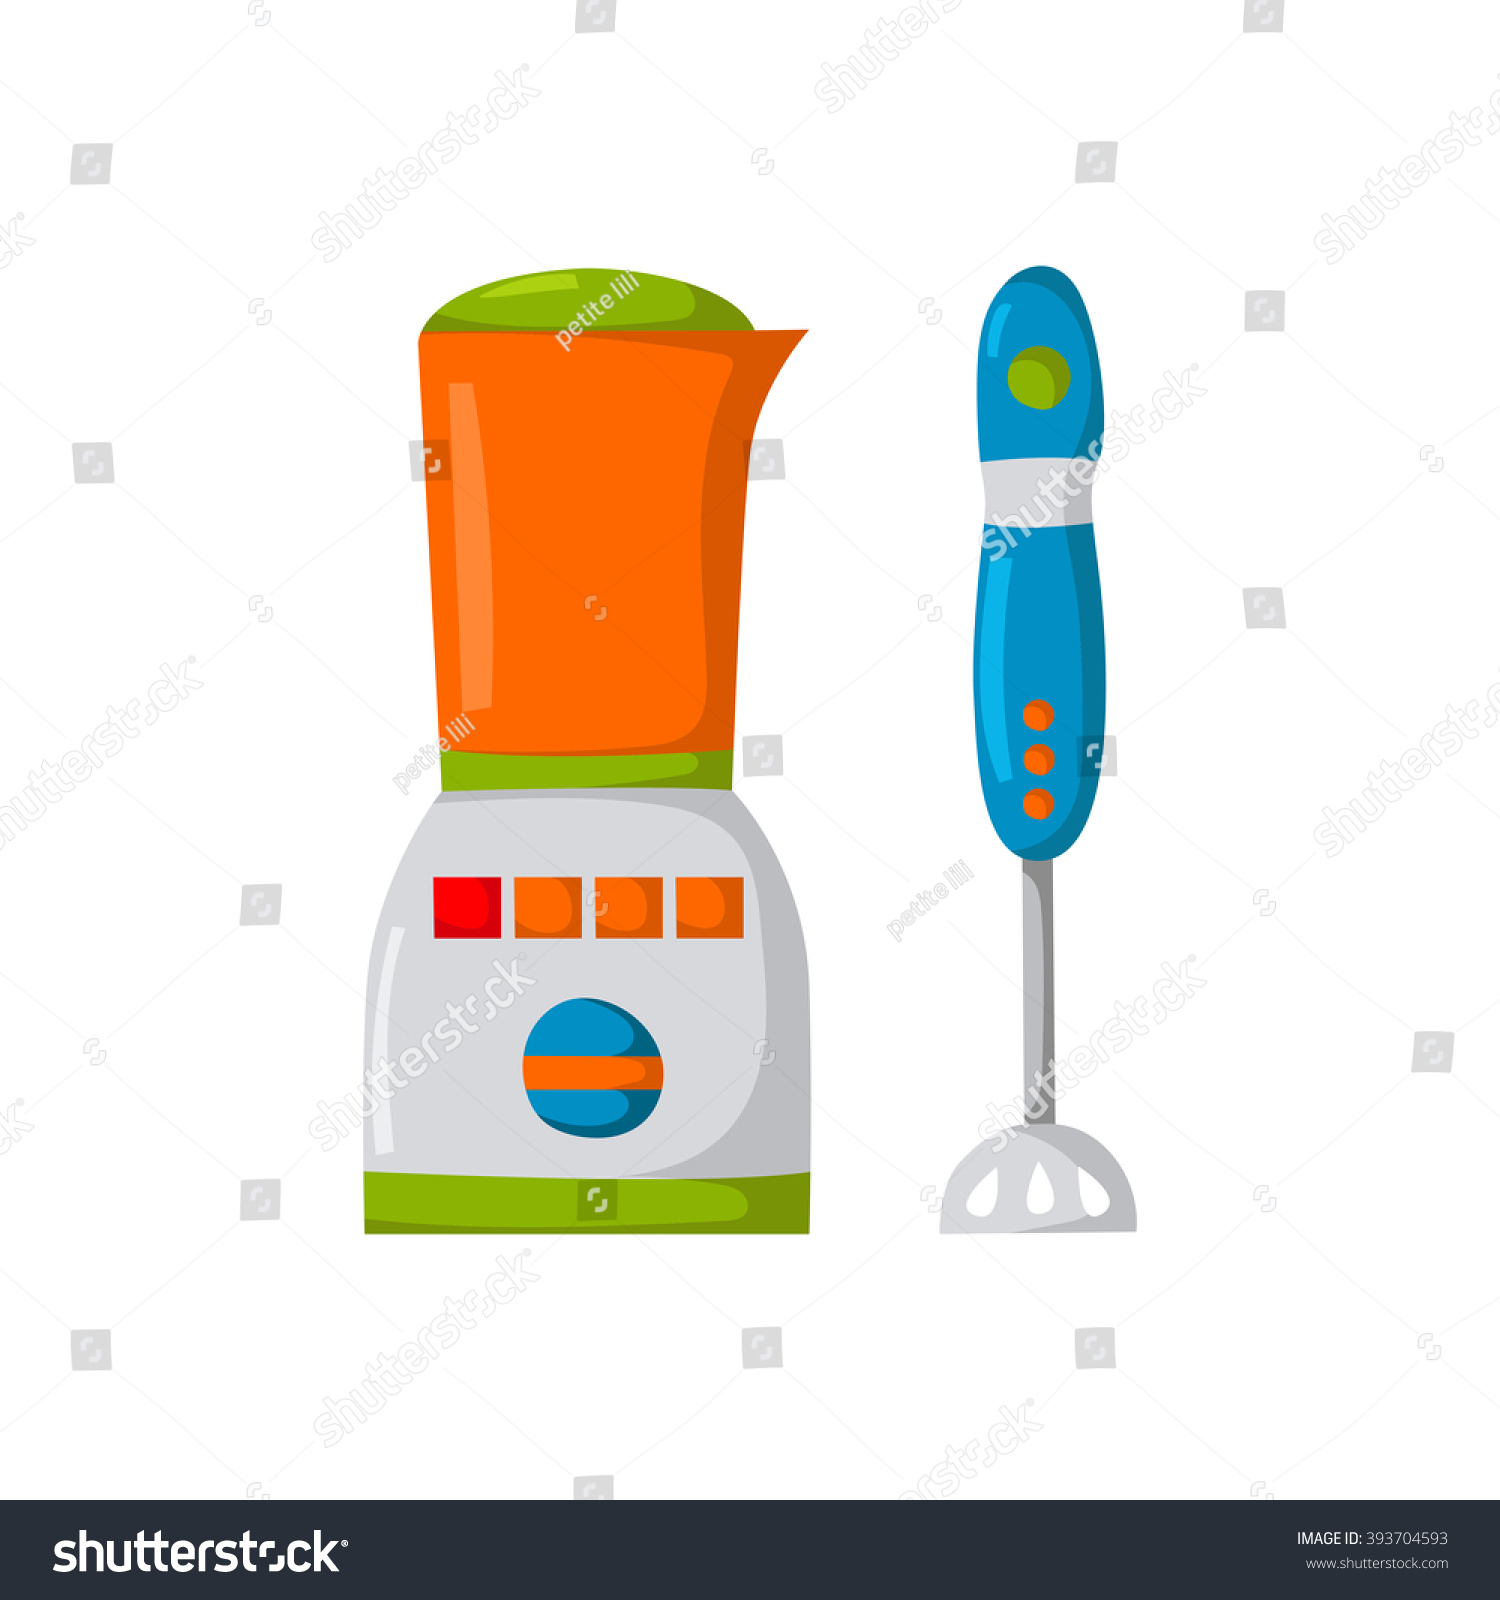 Uncategorized Cute Kitchen Appliances vector illustration cartoon mixer blender kitchen stock with and appliances background cute logo with